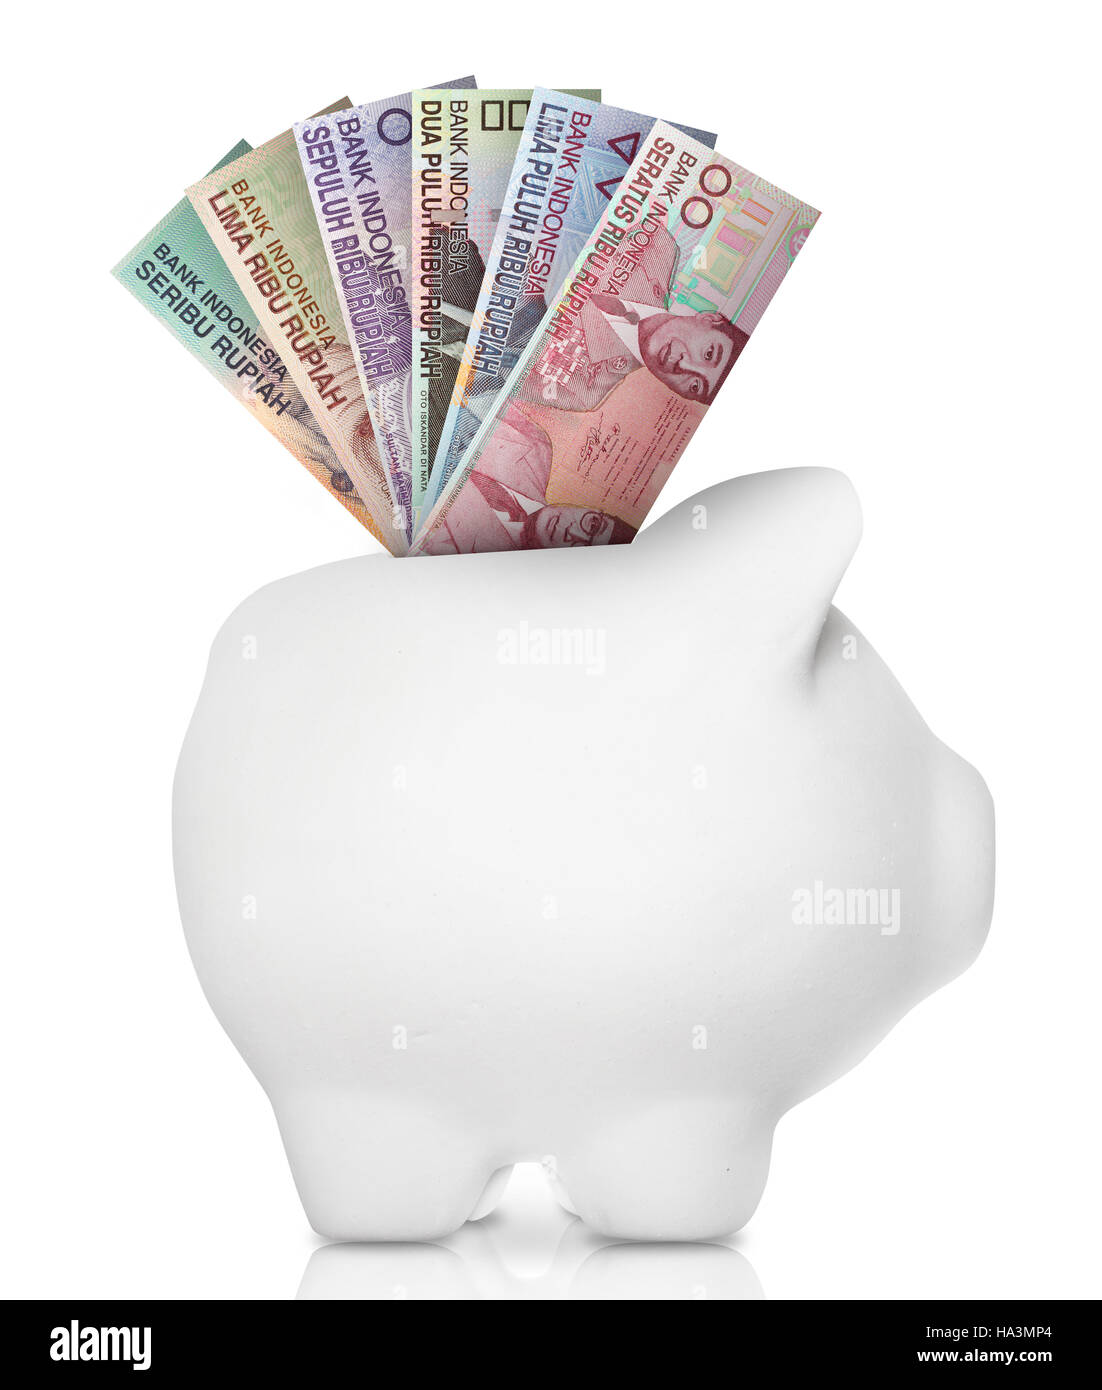 A white piggy bank filled with multiple bank notes. - Stock Image